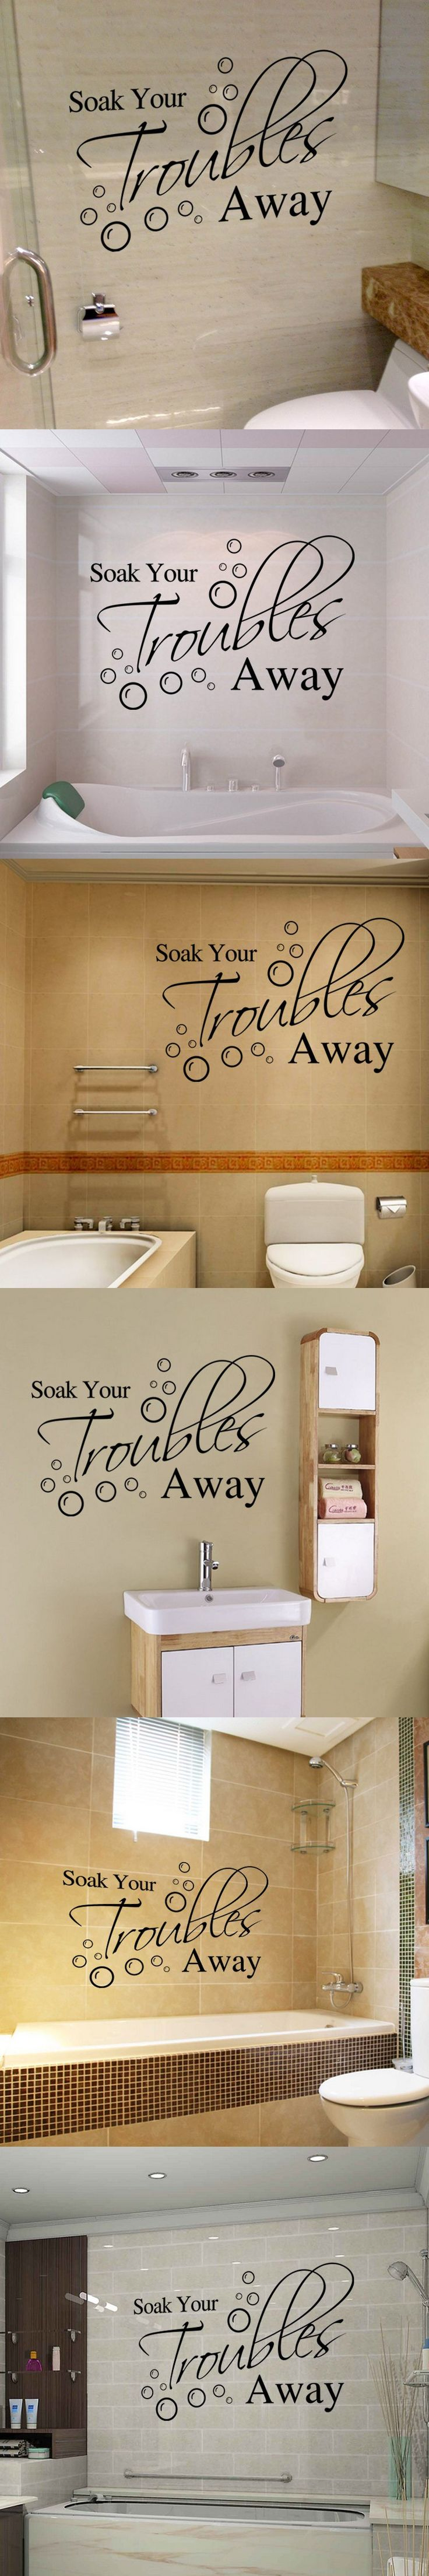 best 20 bathroom stickers ideas on pinterest vinyl tile